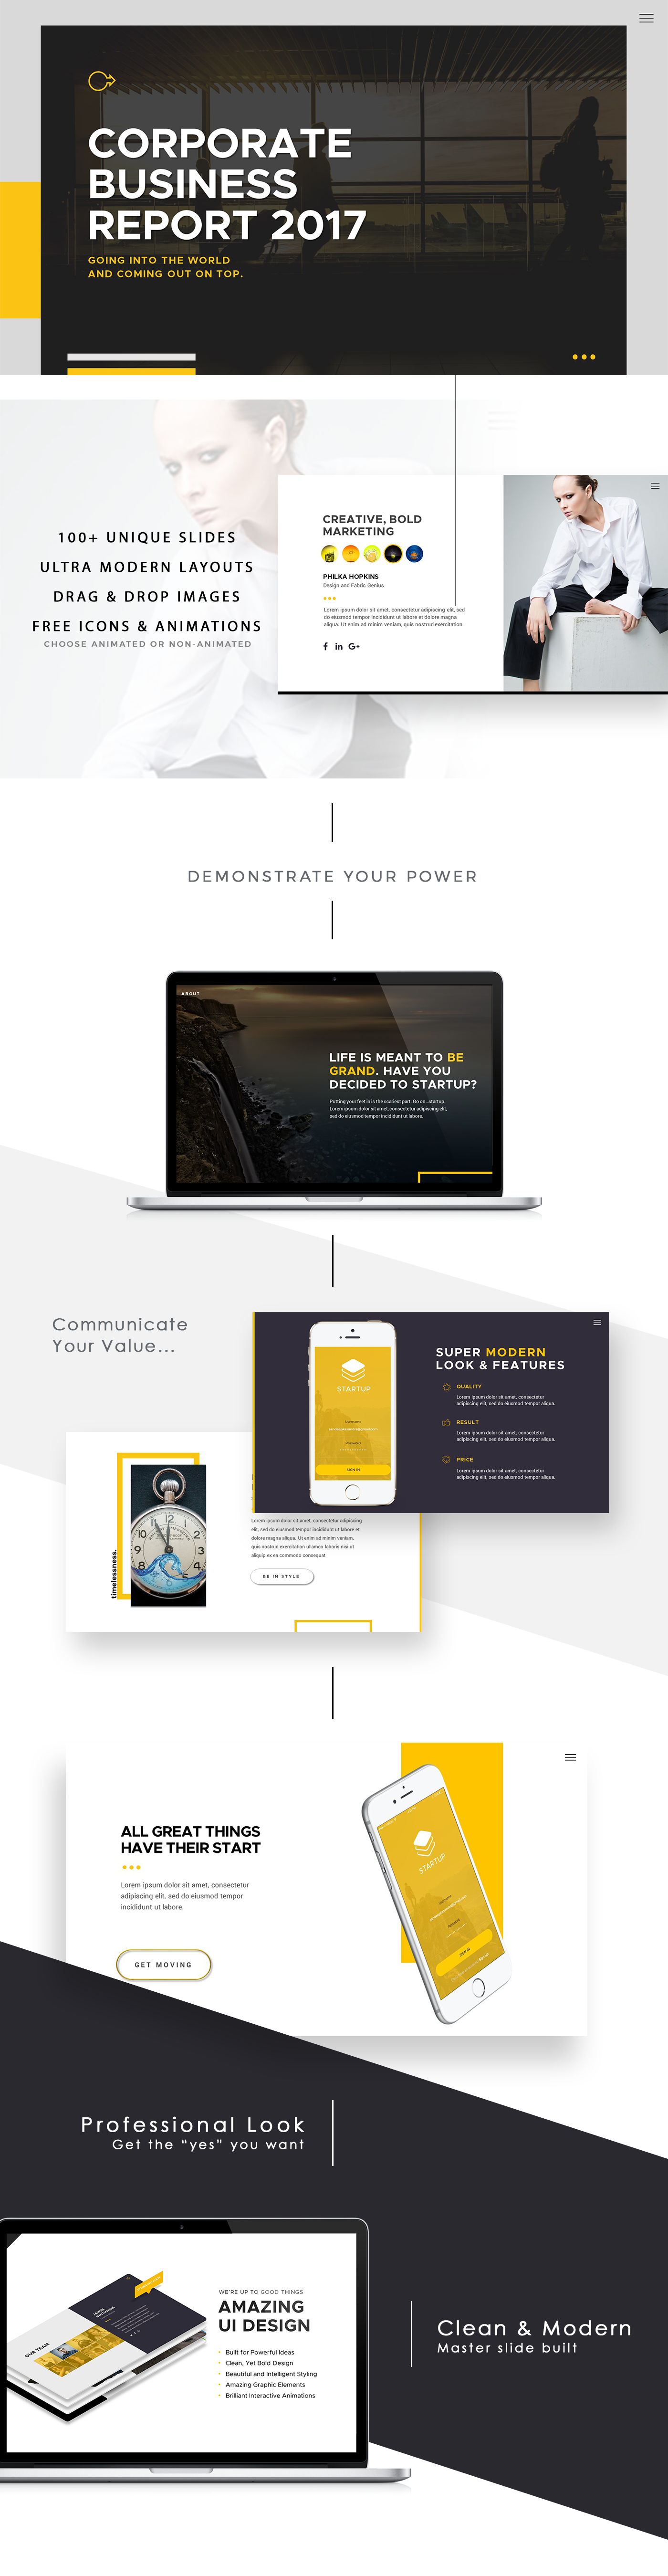 startup pitch deck powerpoint presentationbryant_design, Presentation templates